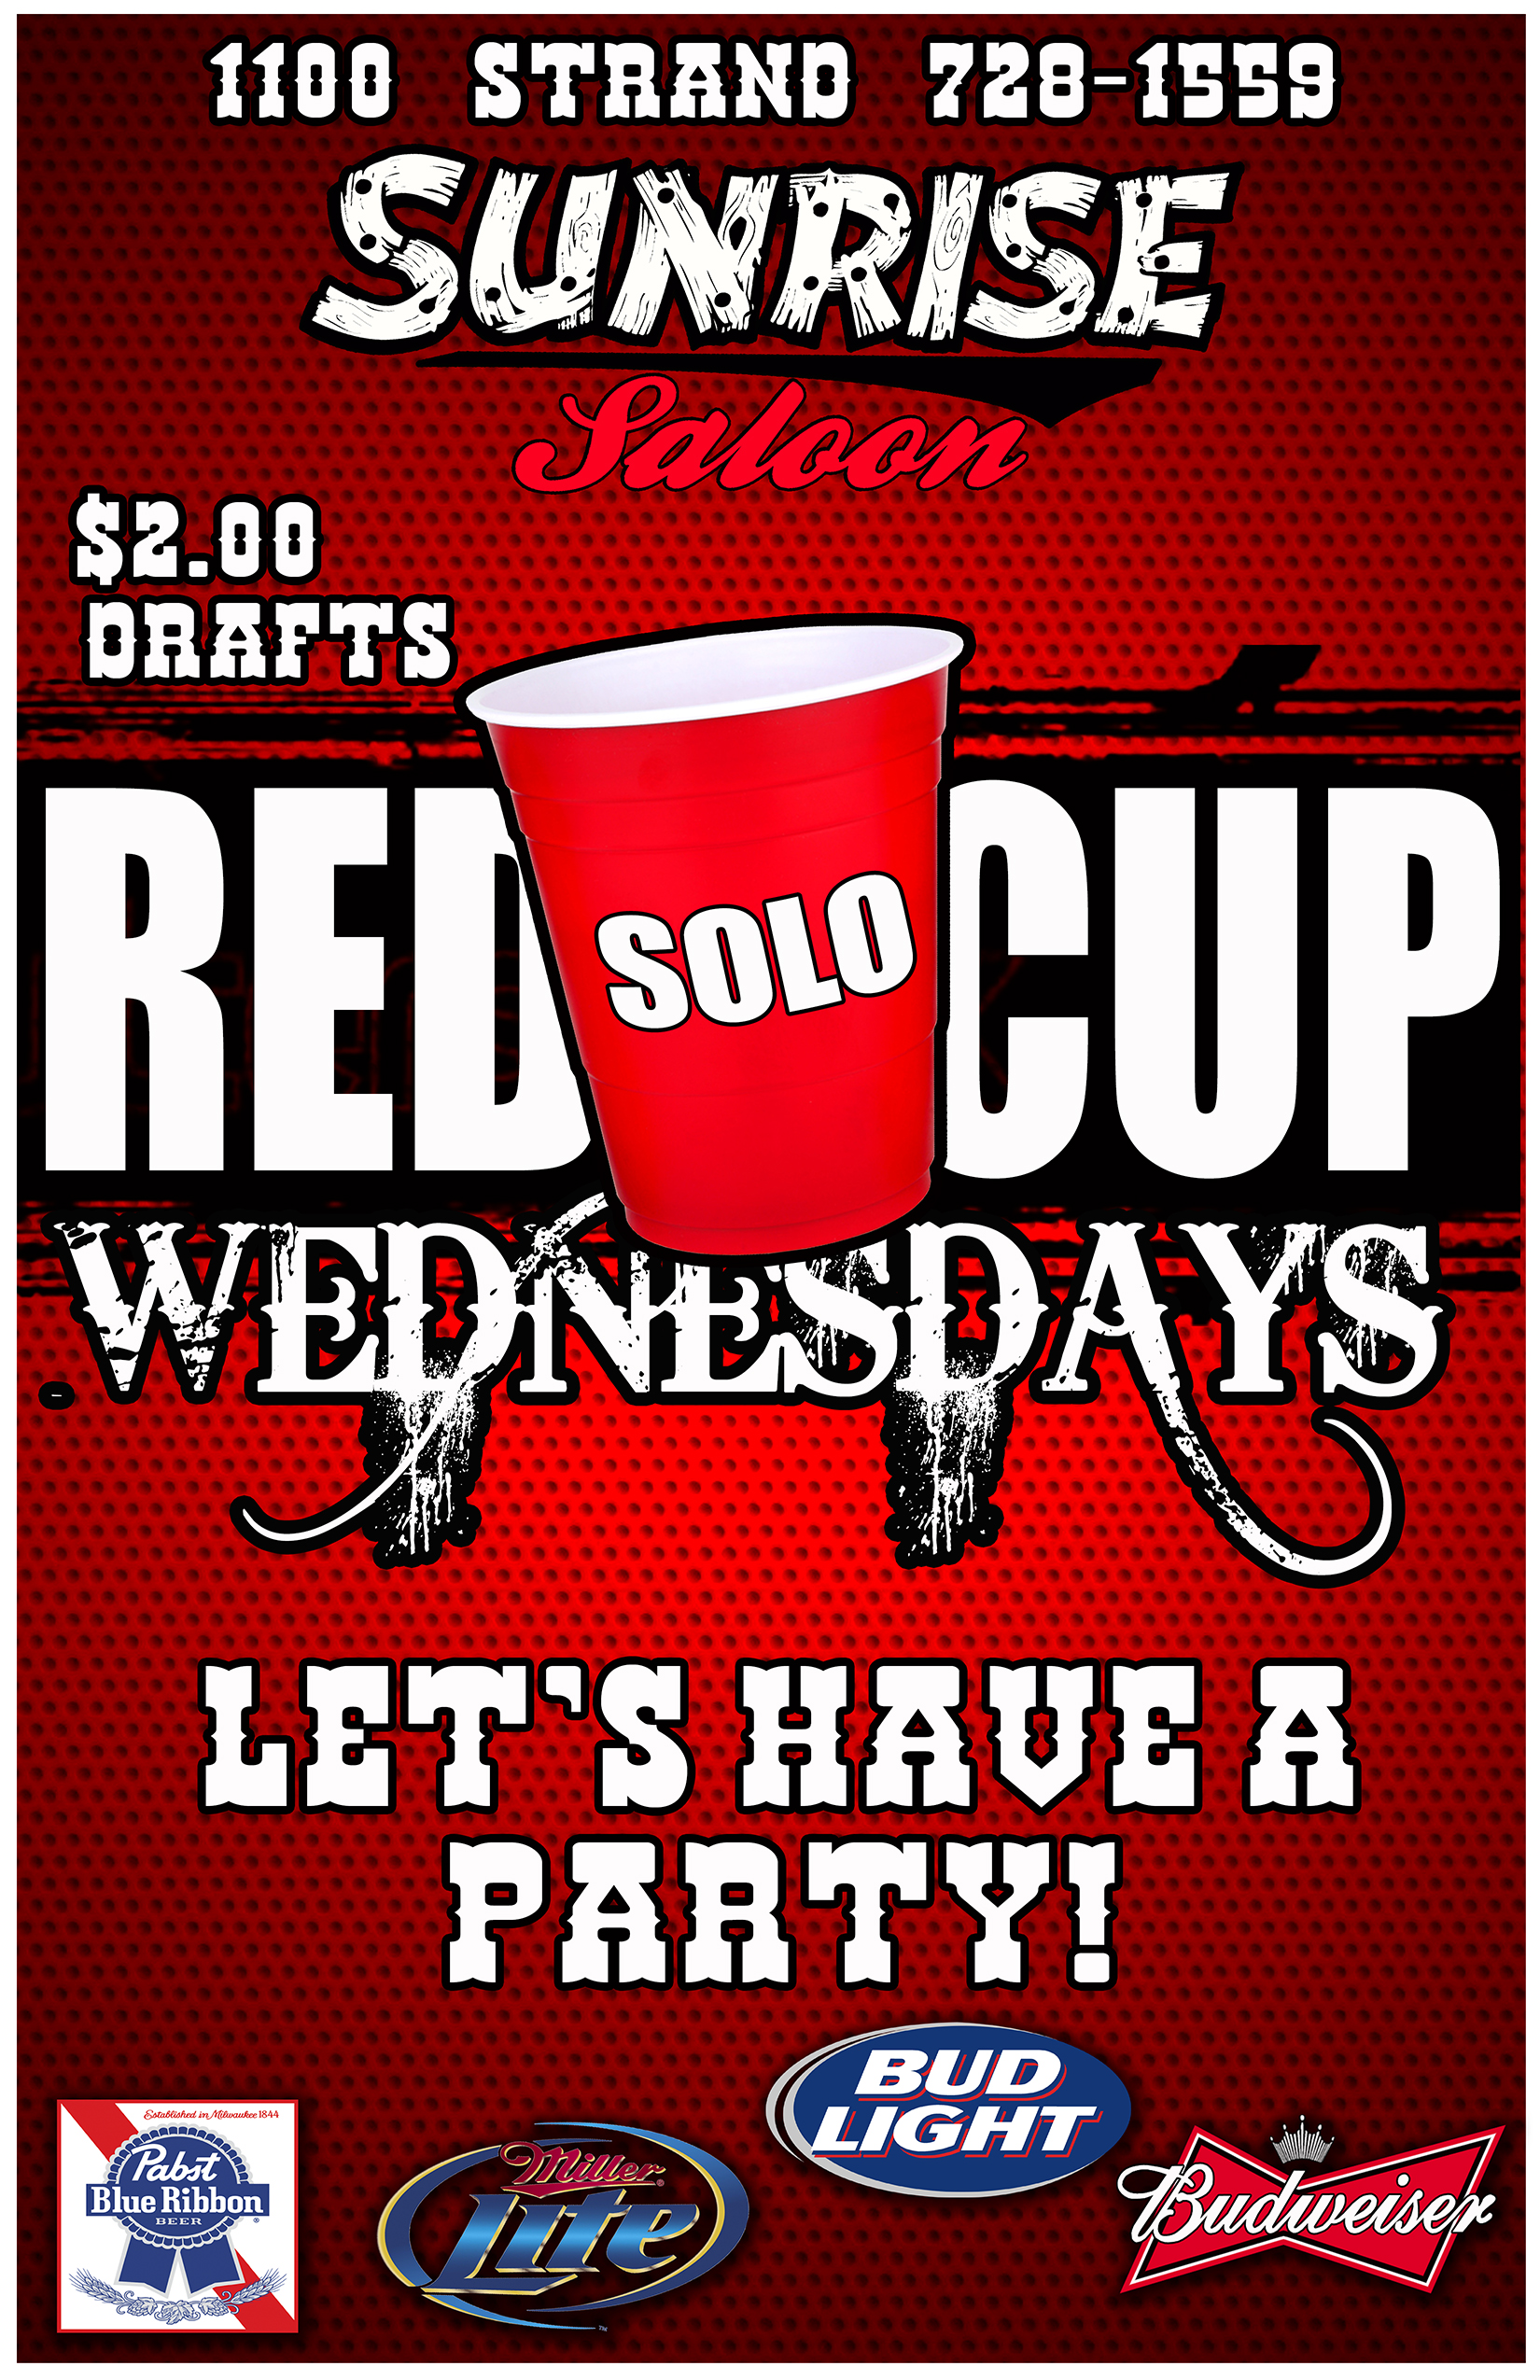 RED SOLO CUP WEDNESDAYS